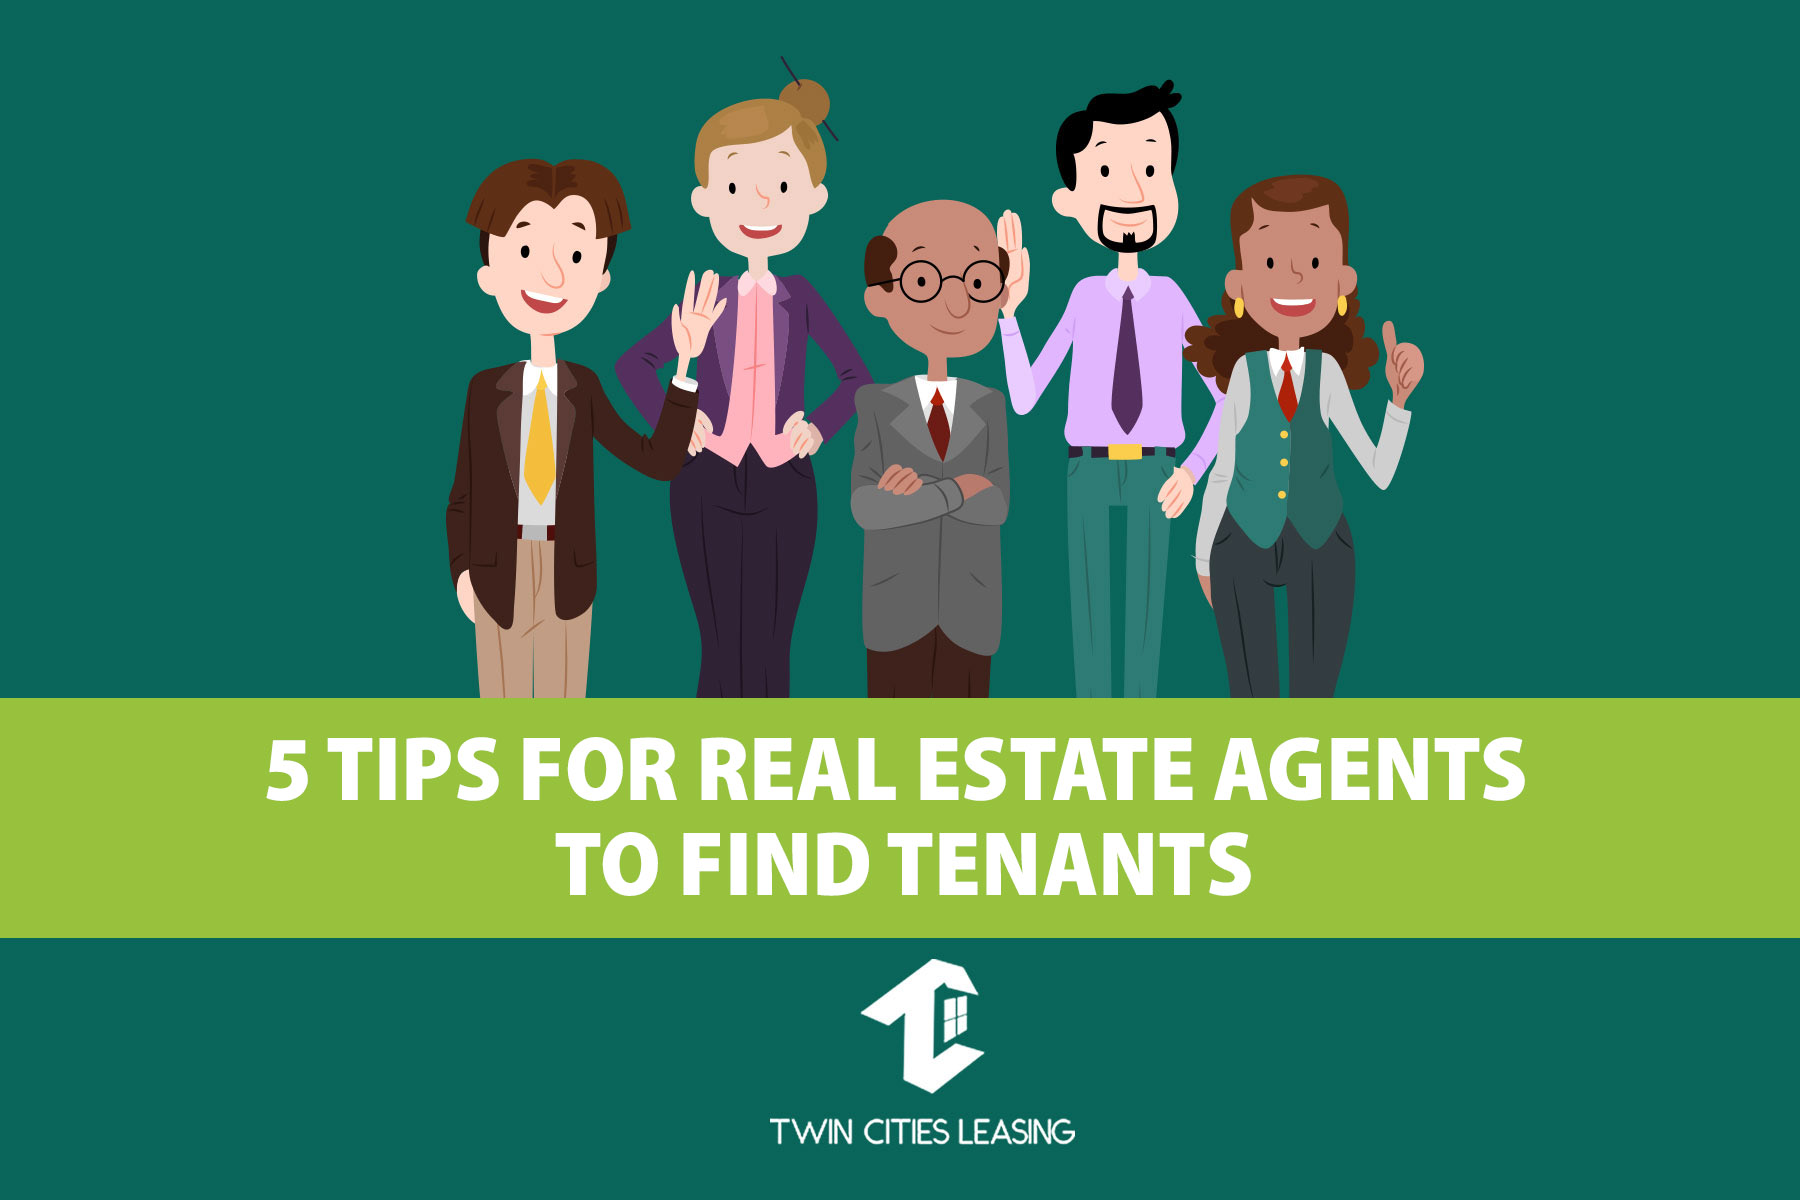 5 Tips to Find Tenants in Minnesota